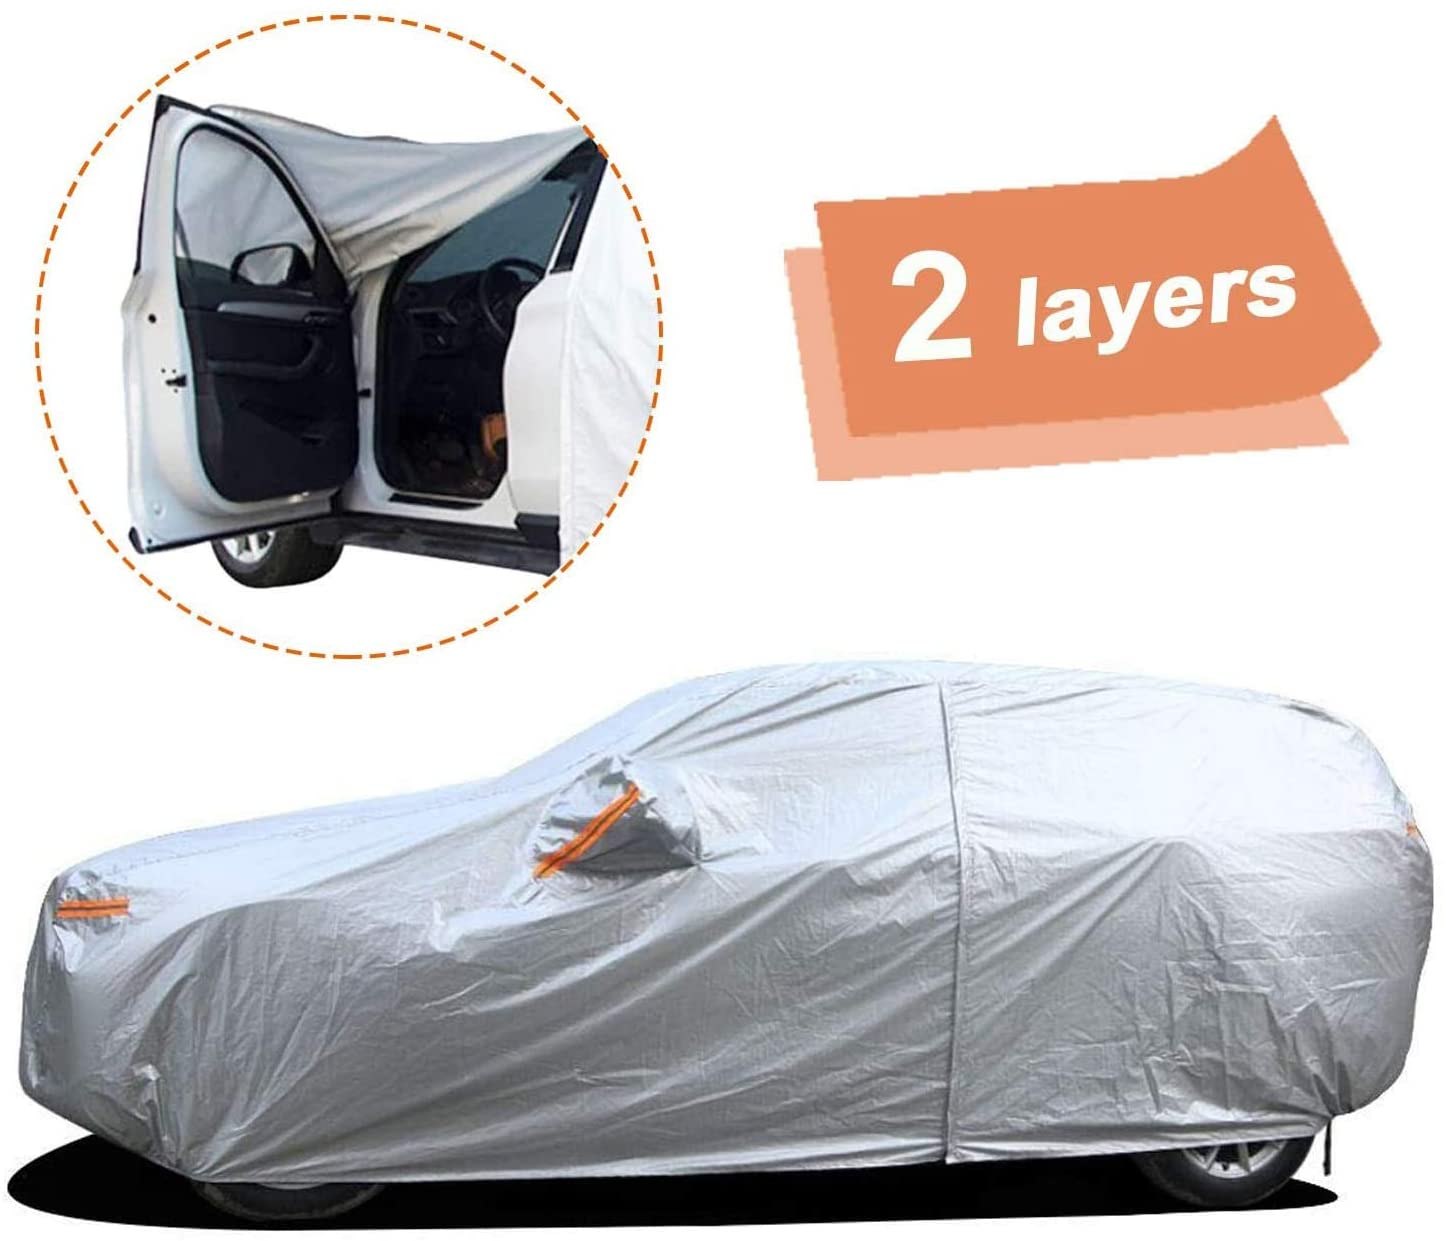 535x200x160 cm Gengcan Car Covers Fit For Benz S Series Waterproof Breathable Heavy Duty Scratch Proof All Weather Protection Full Covers with Side Opening Style D Silver